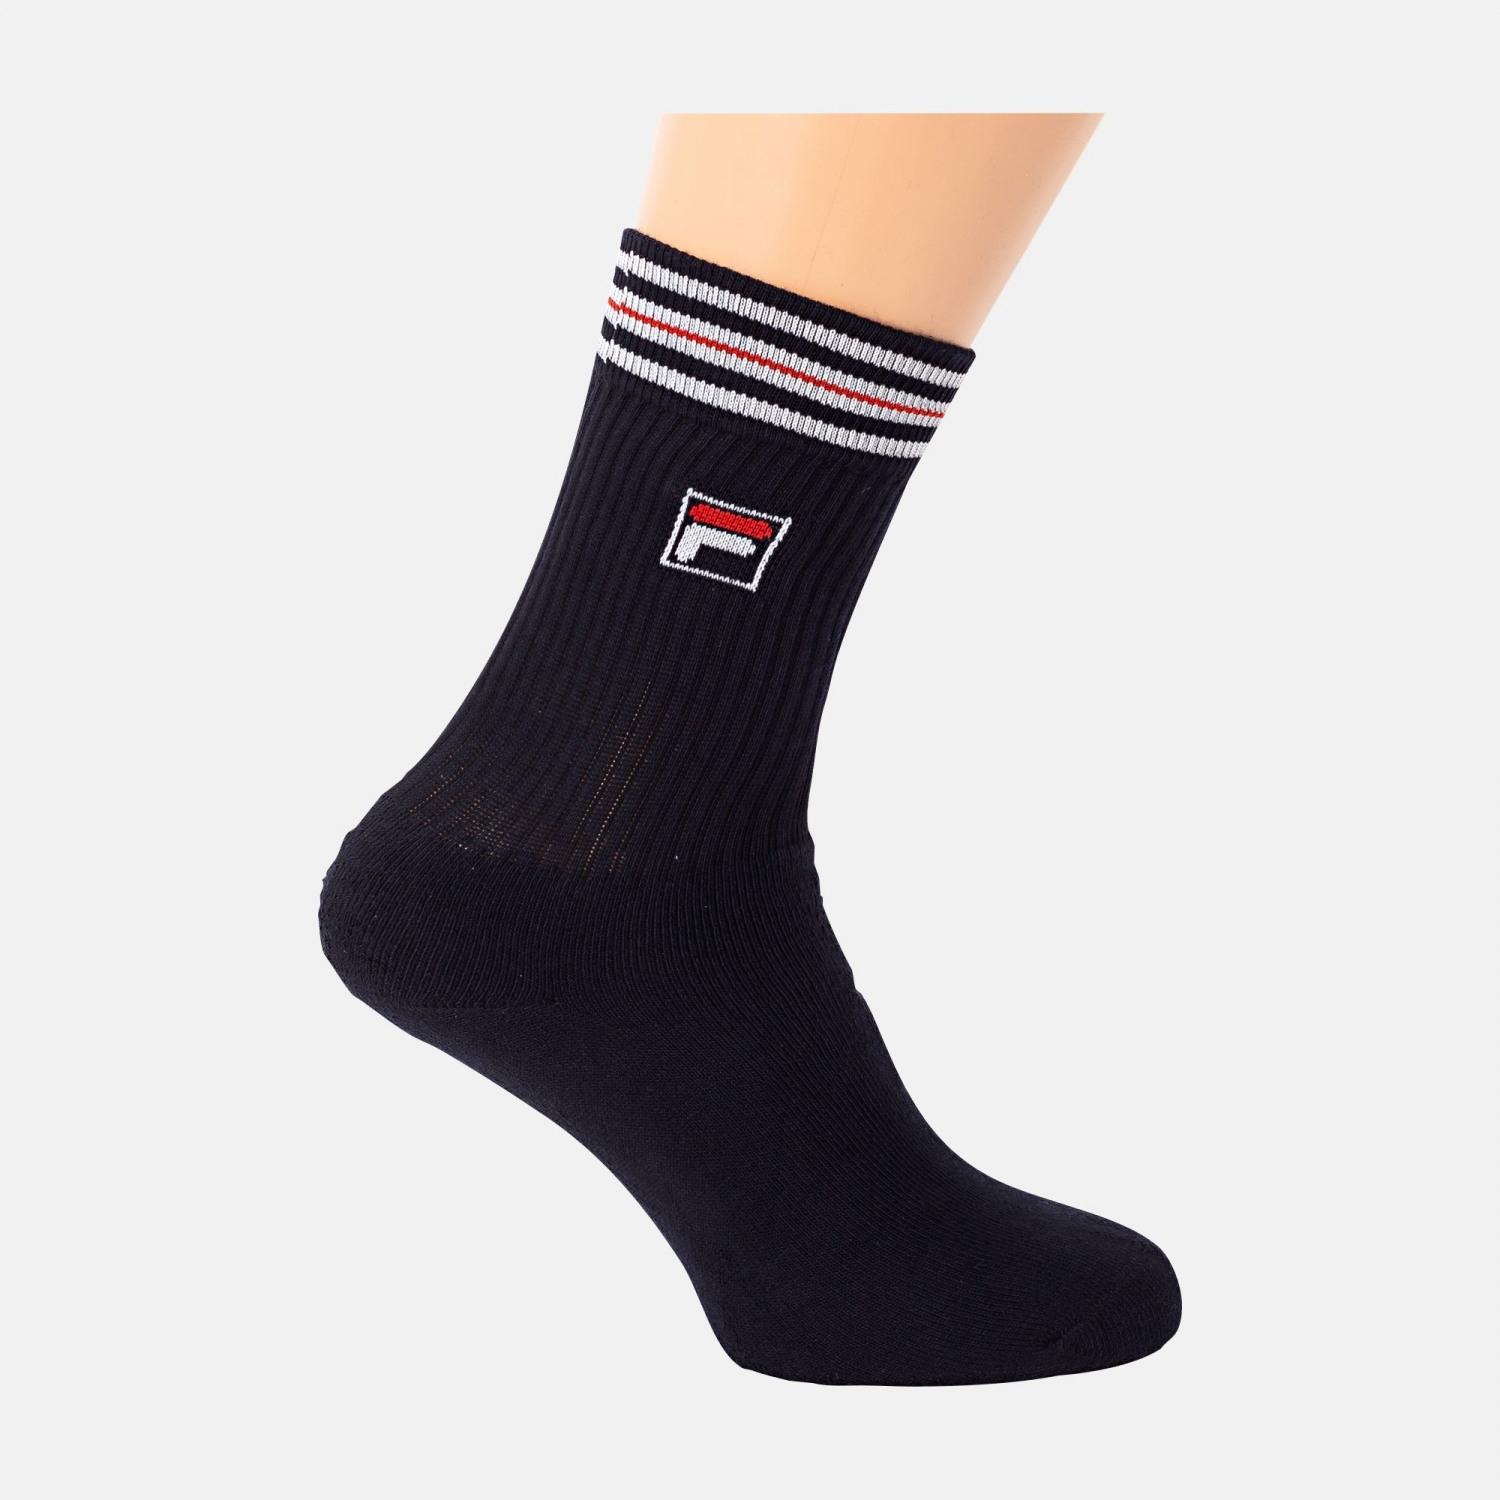 Fila Unisex Tennis Socks black Bild 1